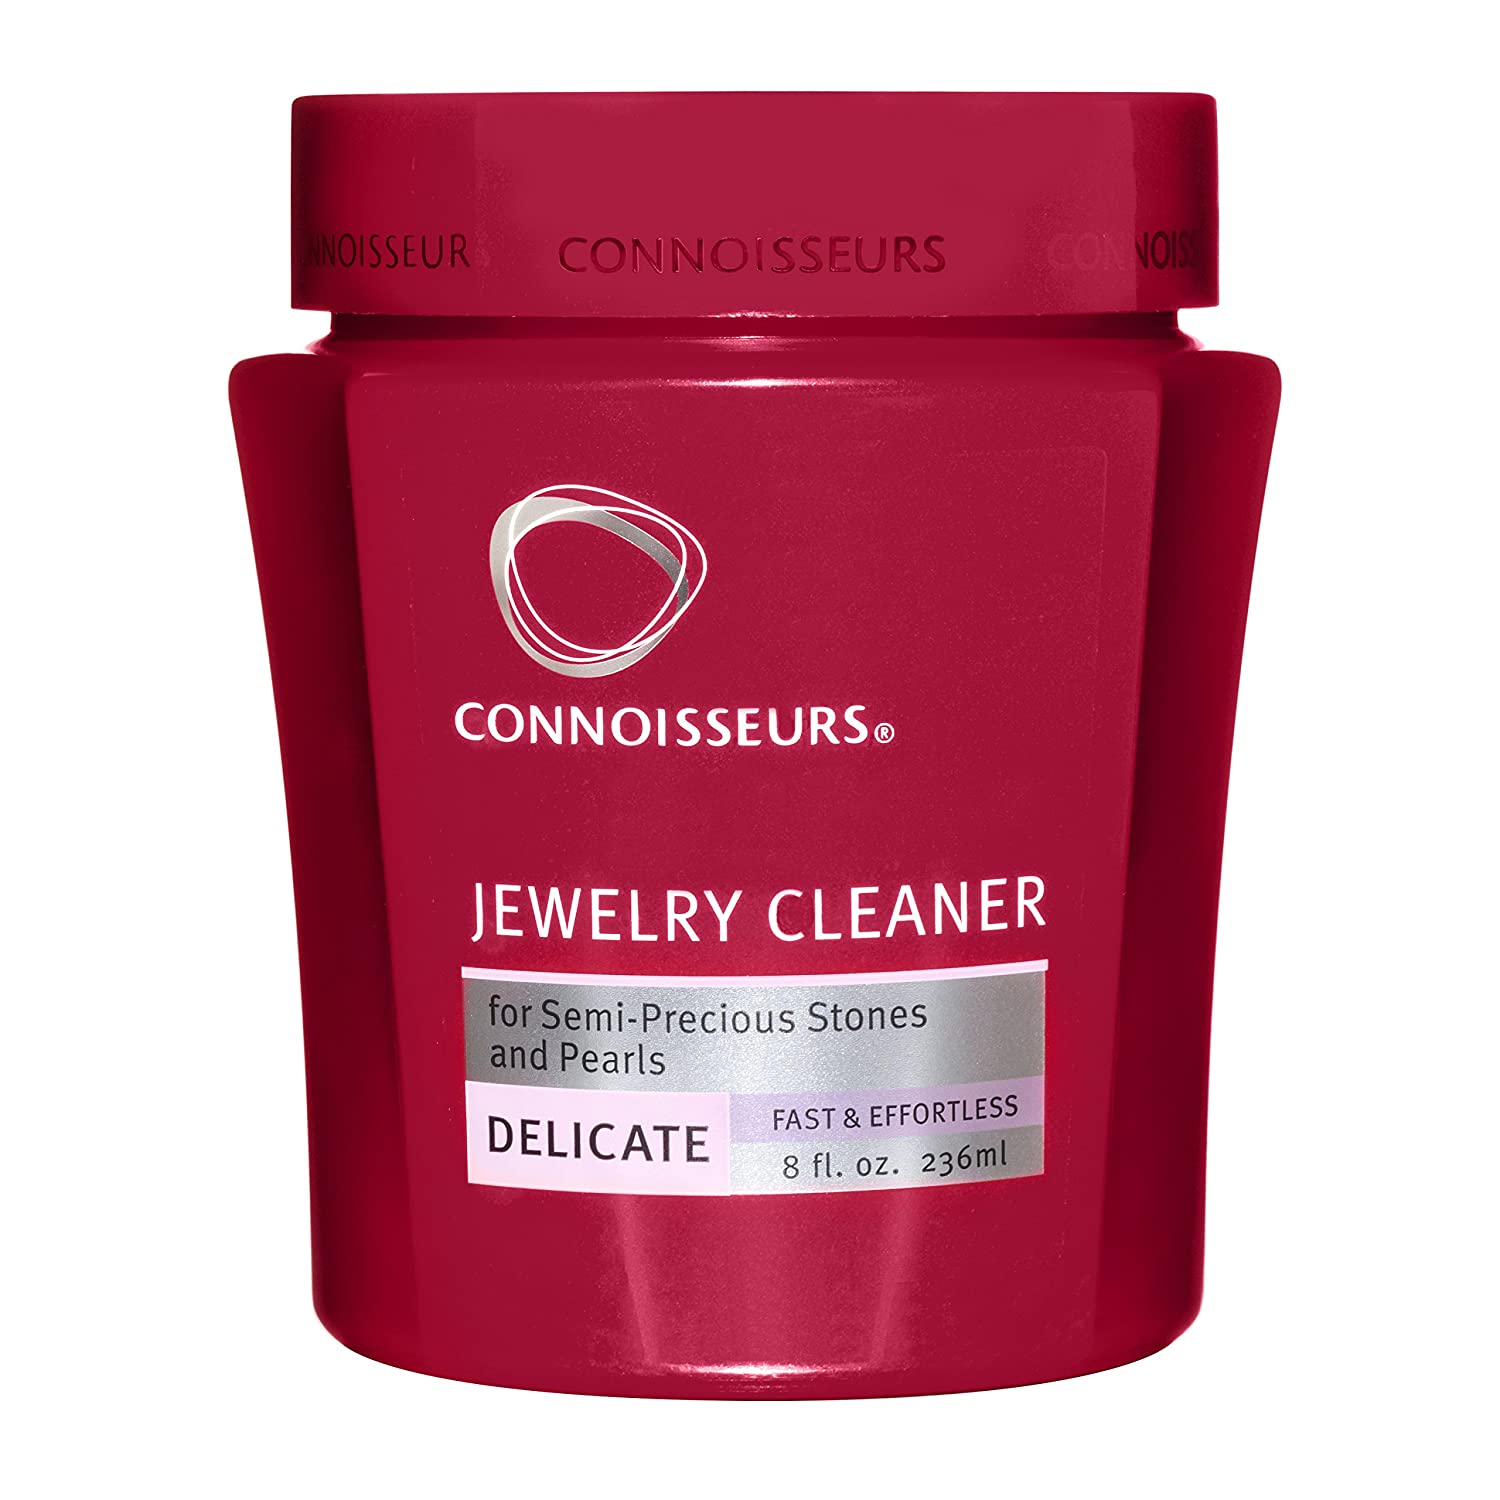 Connoisseurs Delicate Jewellery Cleaner, safe on Pearls, Opals, Purus stones & Costume Jewellery. 236ml 1047